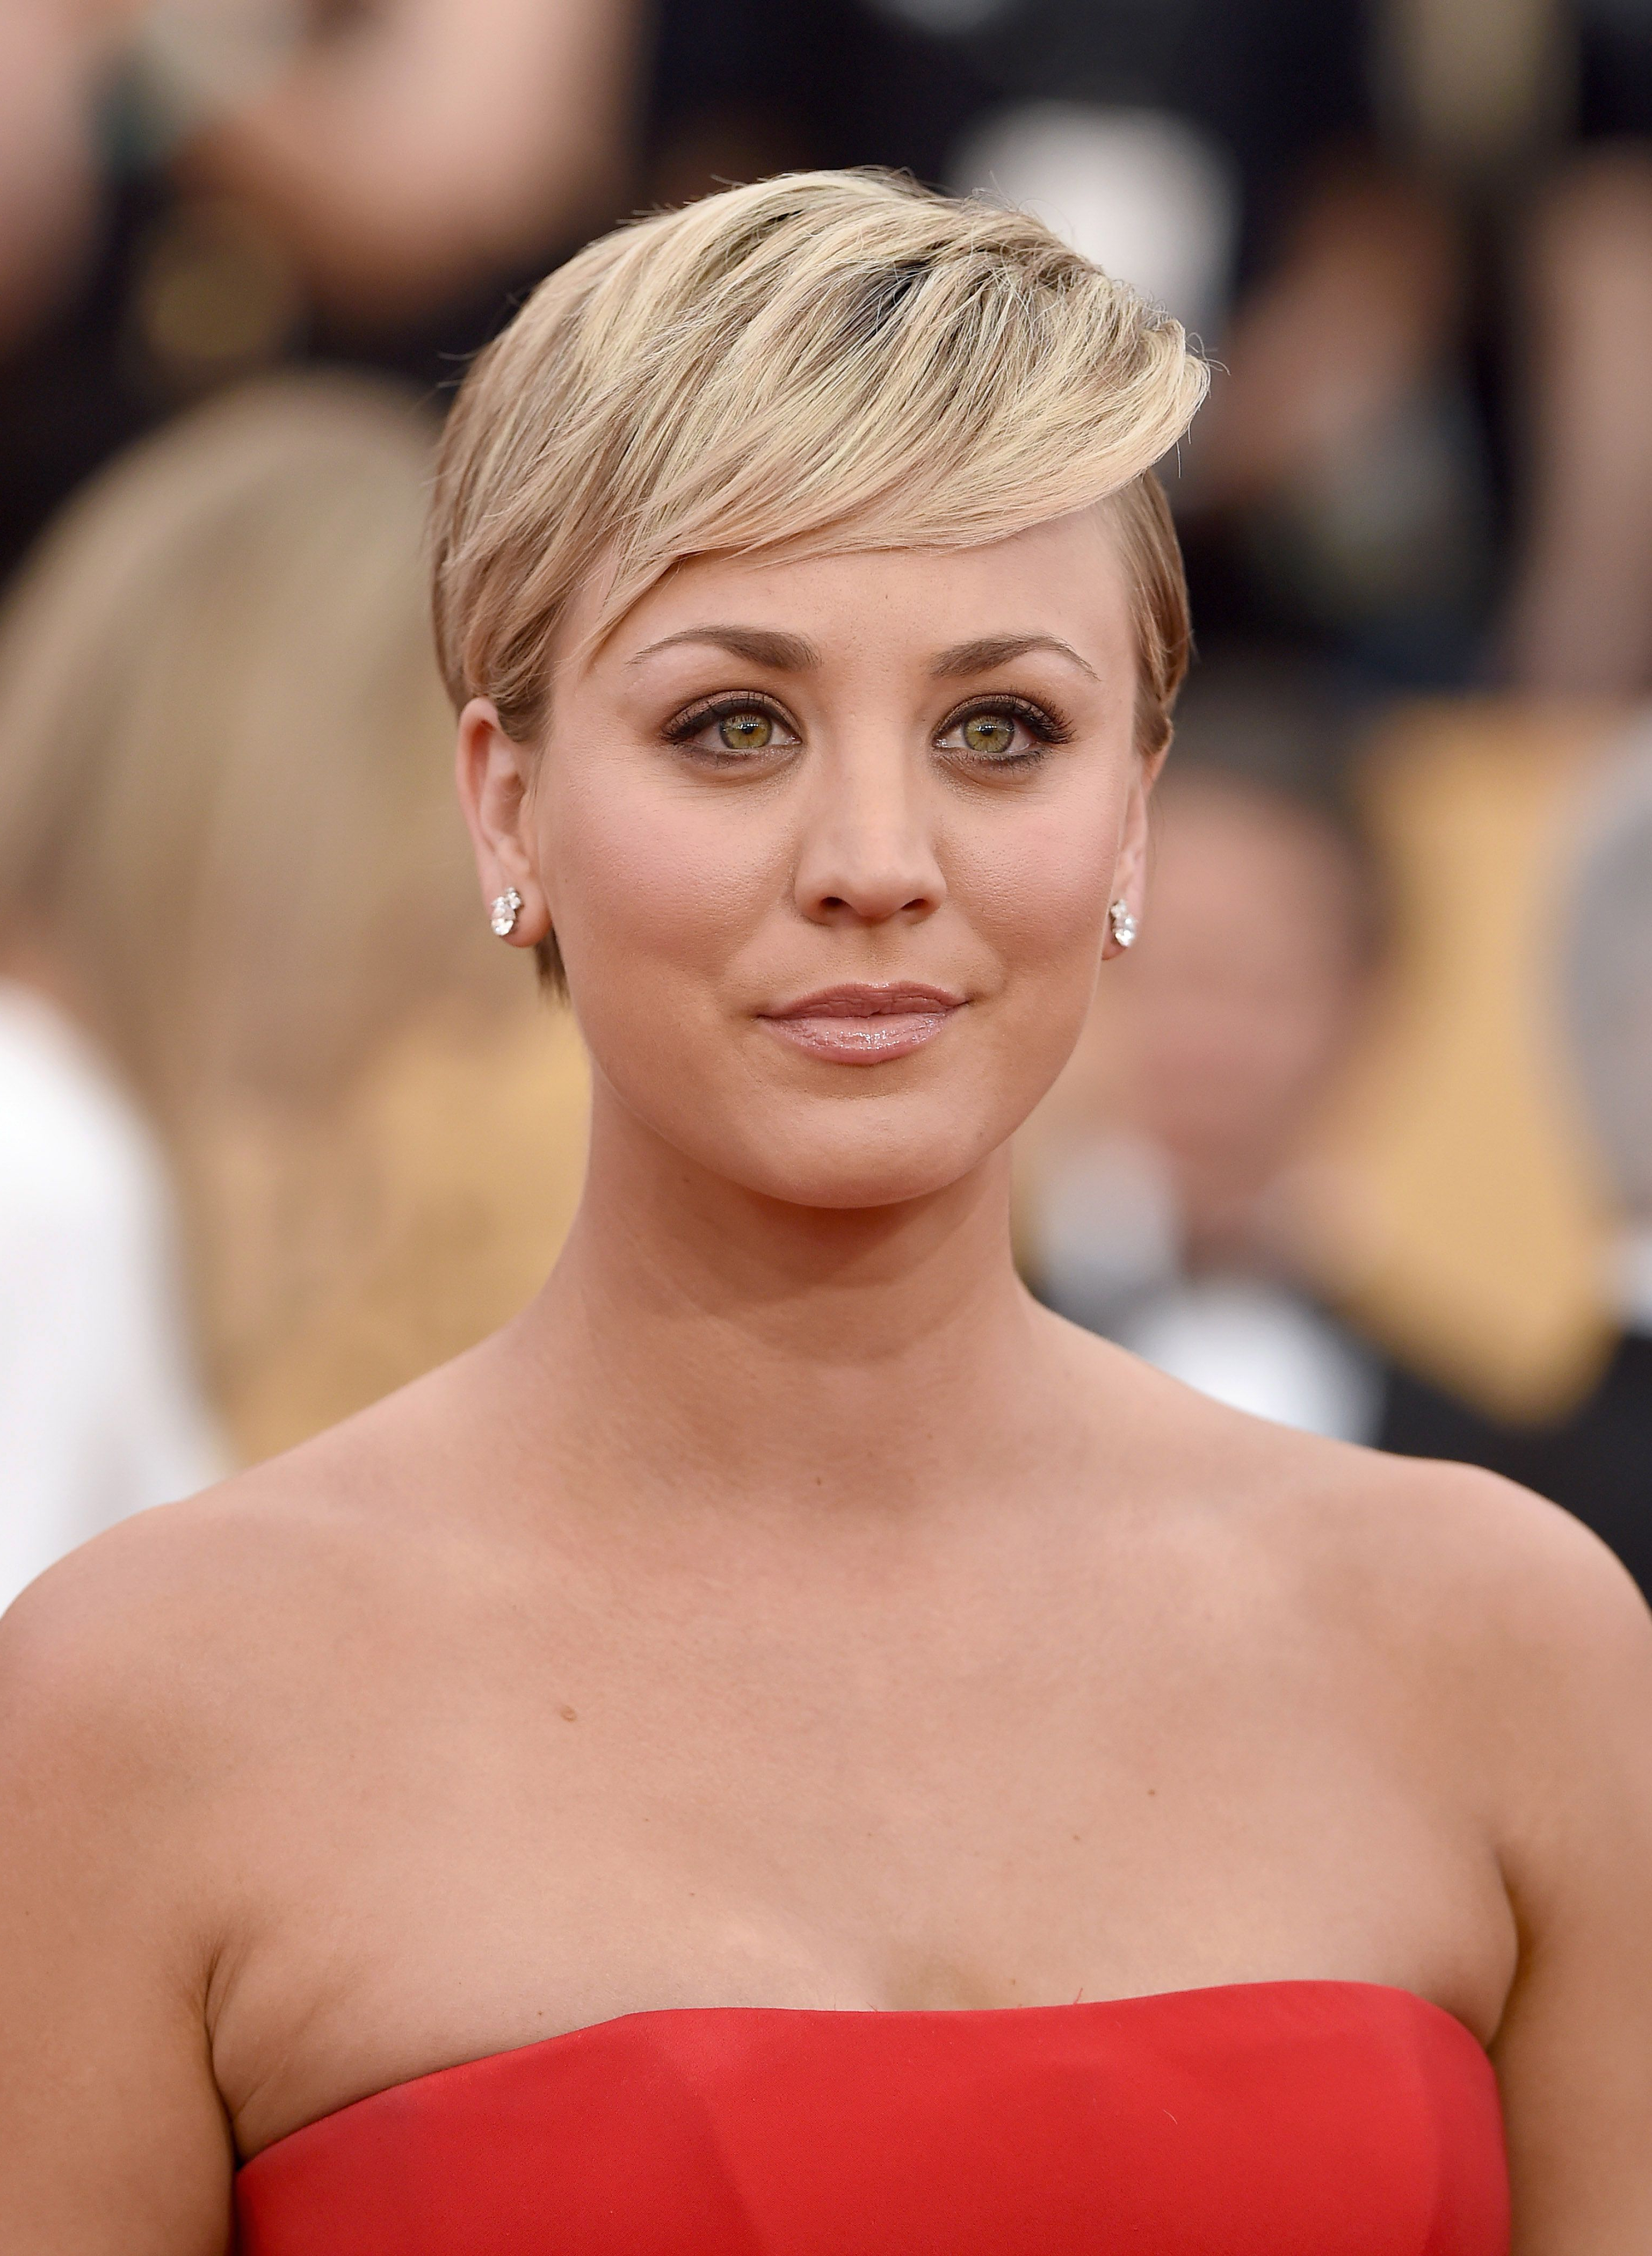 40 Best Short Pixie Cut Hairstyles 2018 – Cute Pixie Haircuts For Women With Rebonded Short Hairstyles (View 22 of 25)